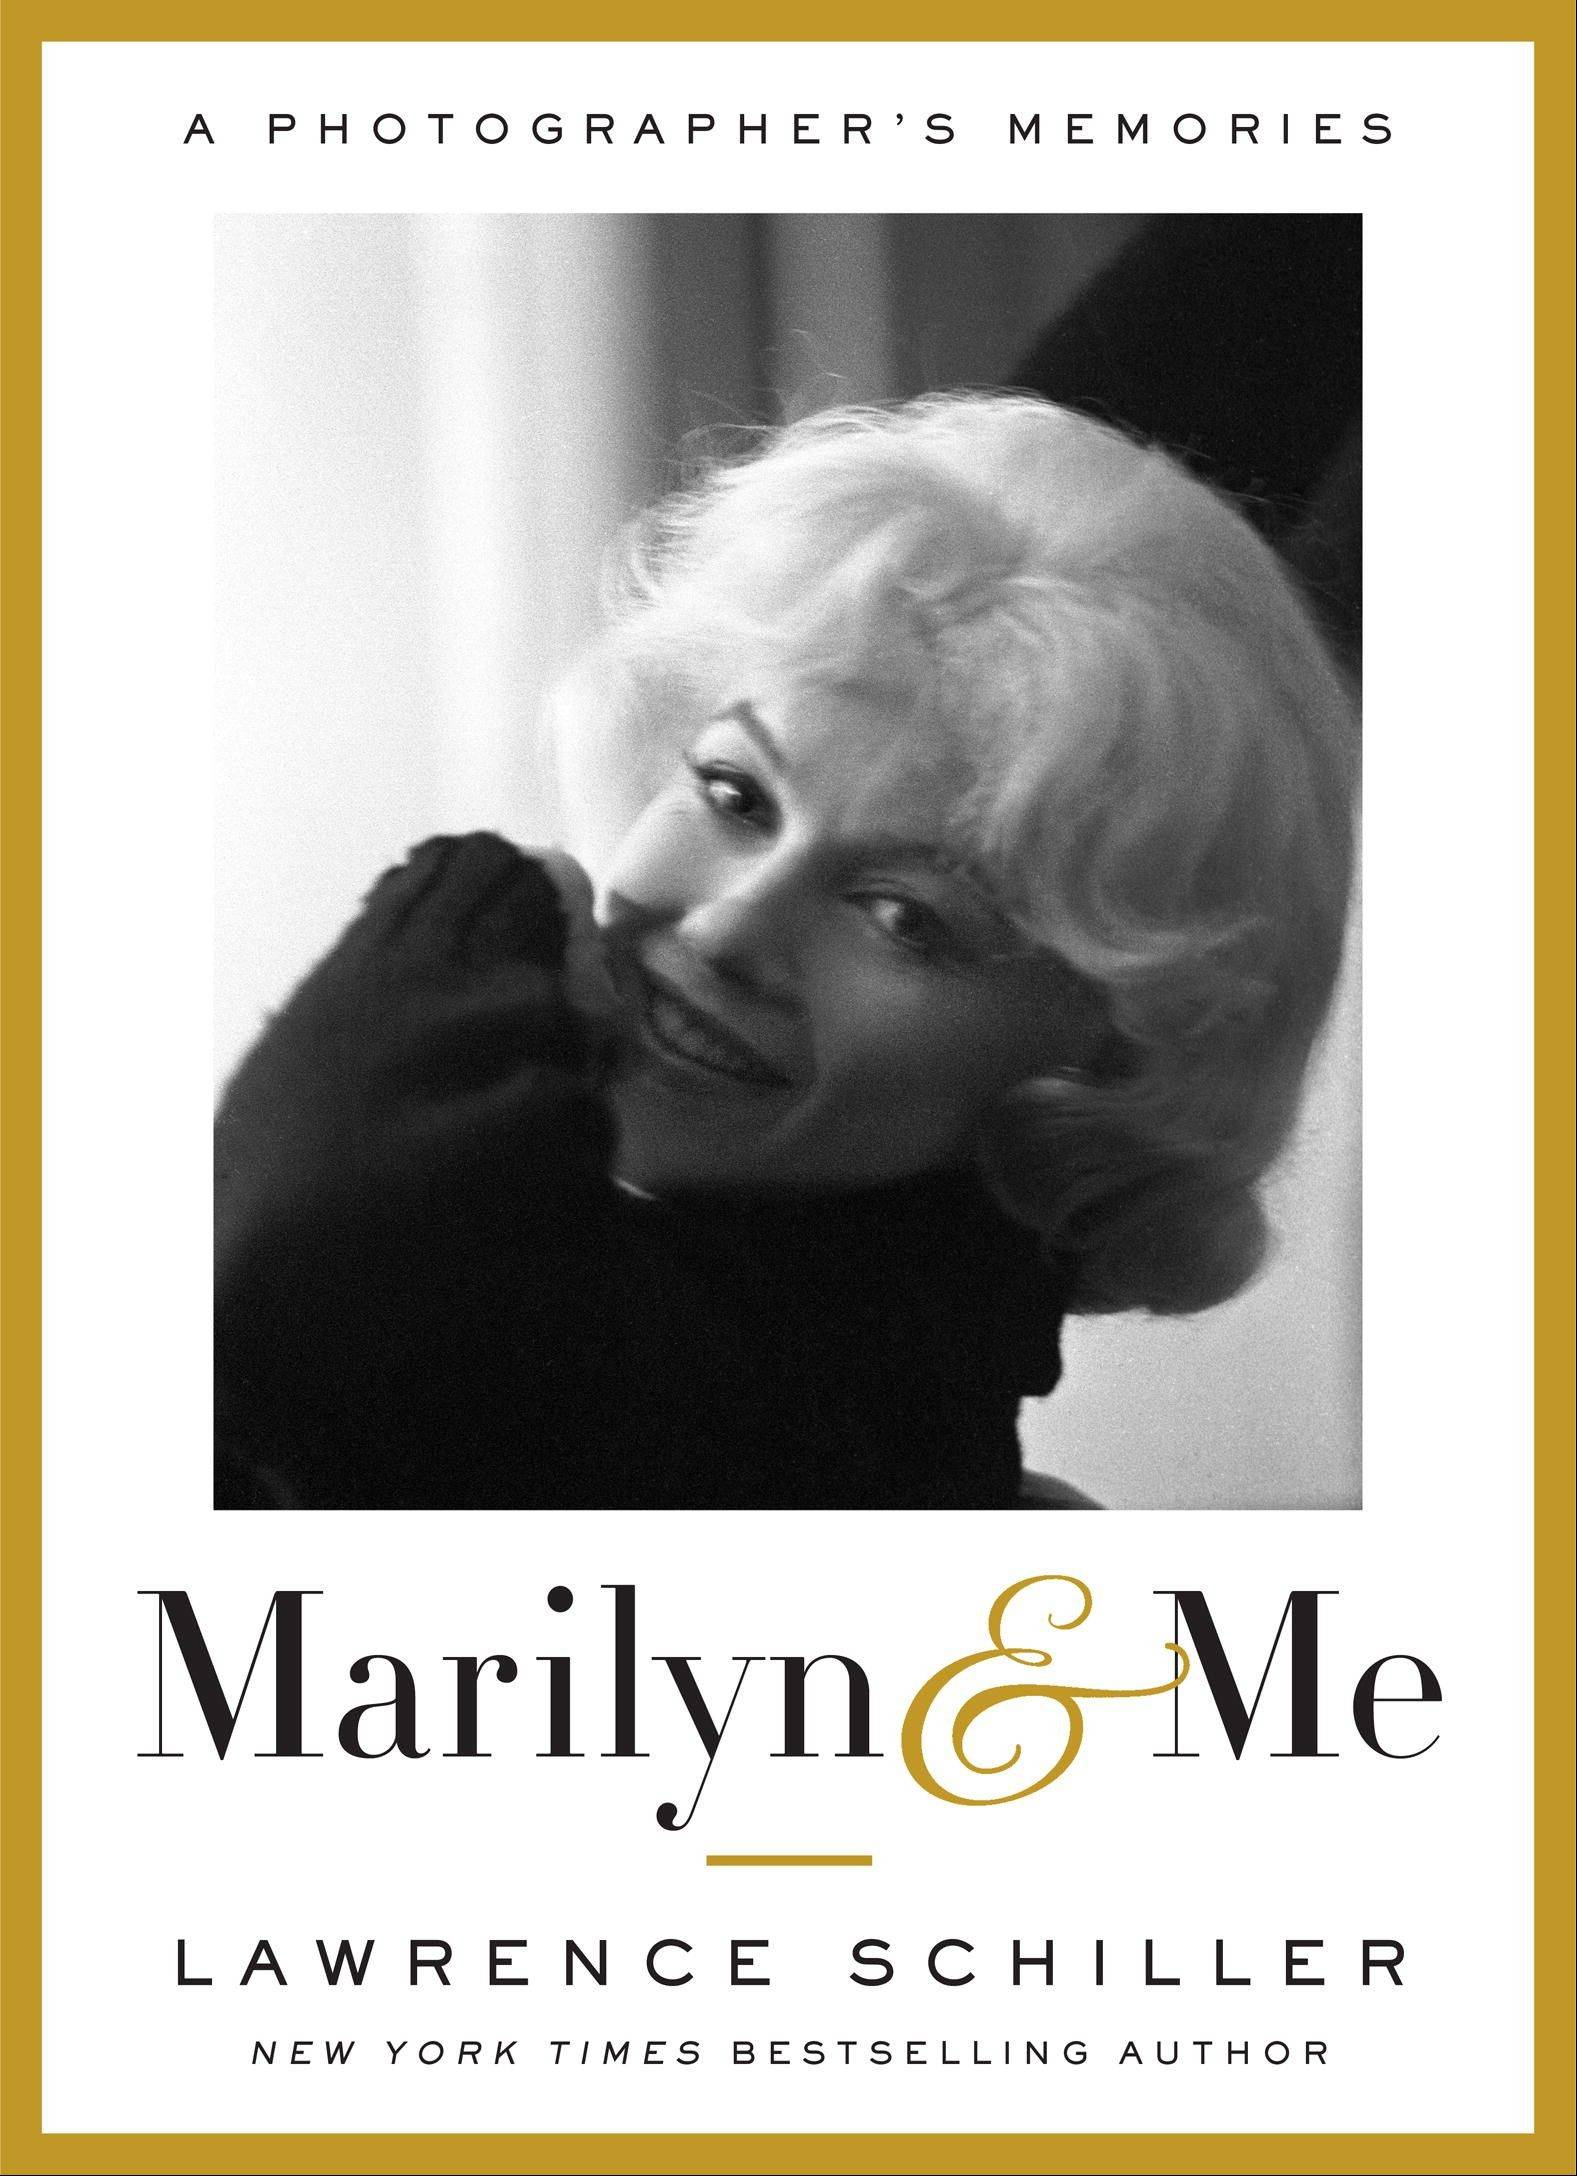 """Marilyn & Me: A Photographer's Memories"" by Lawrence Schiller"